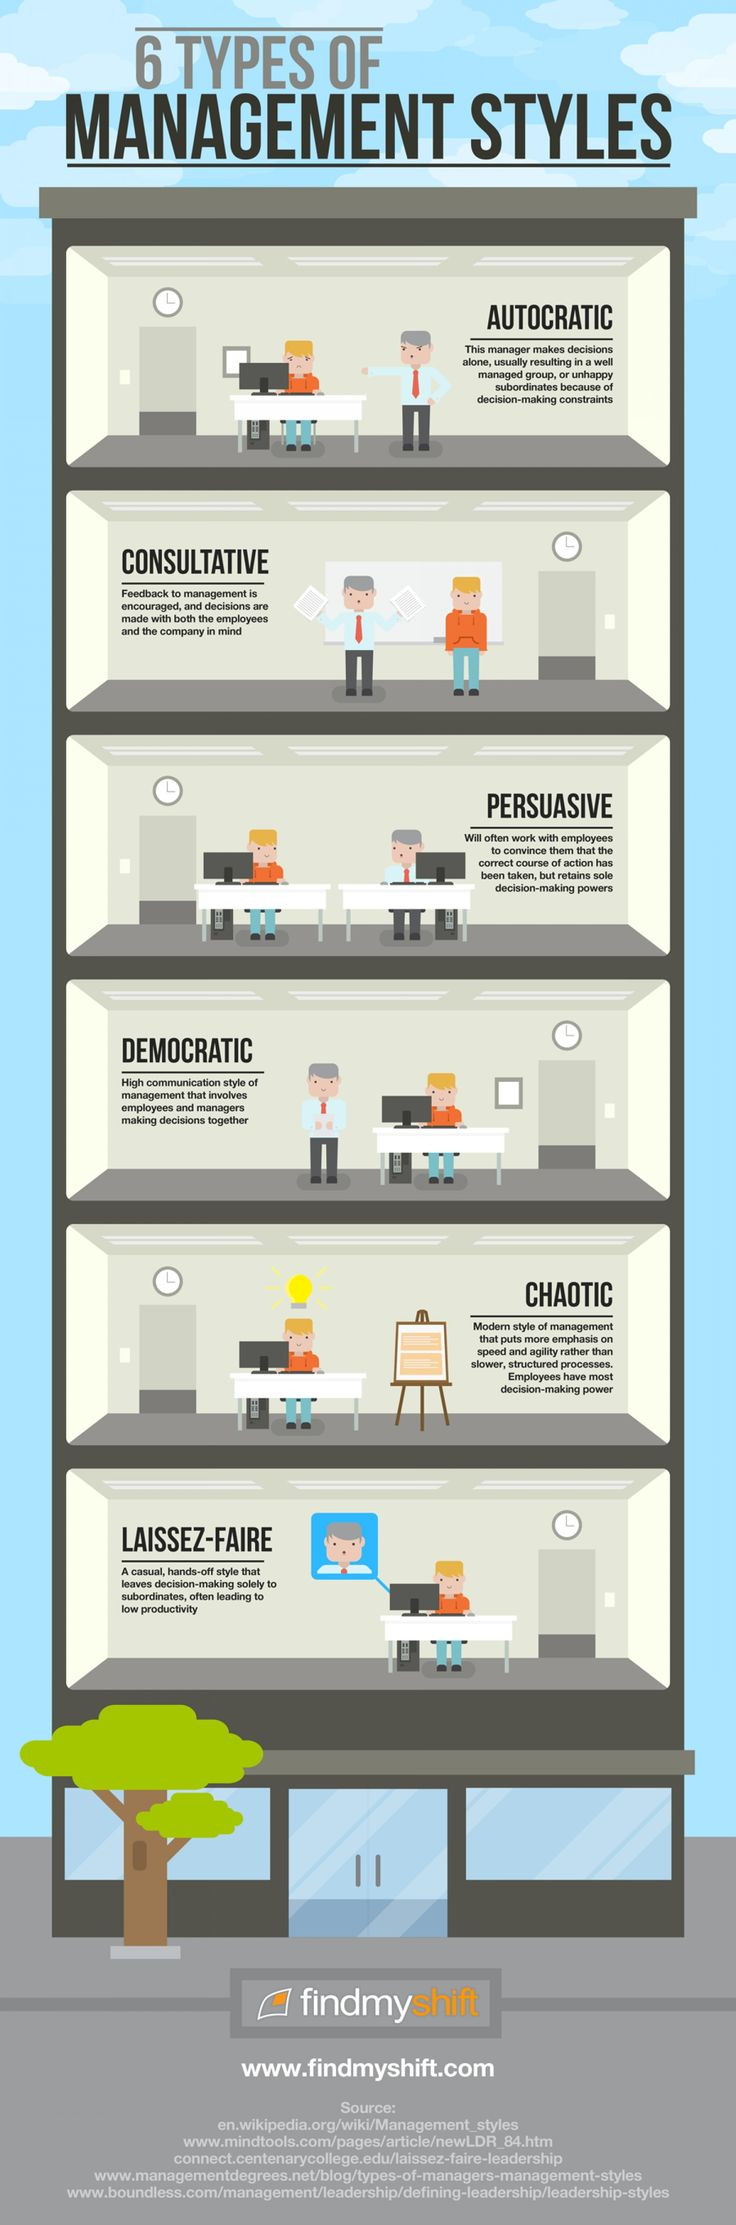 6 Types of Management Styles